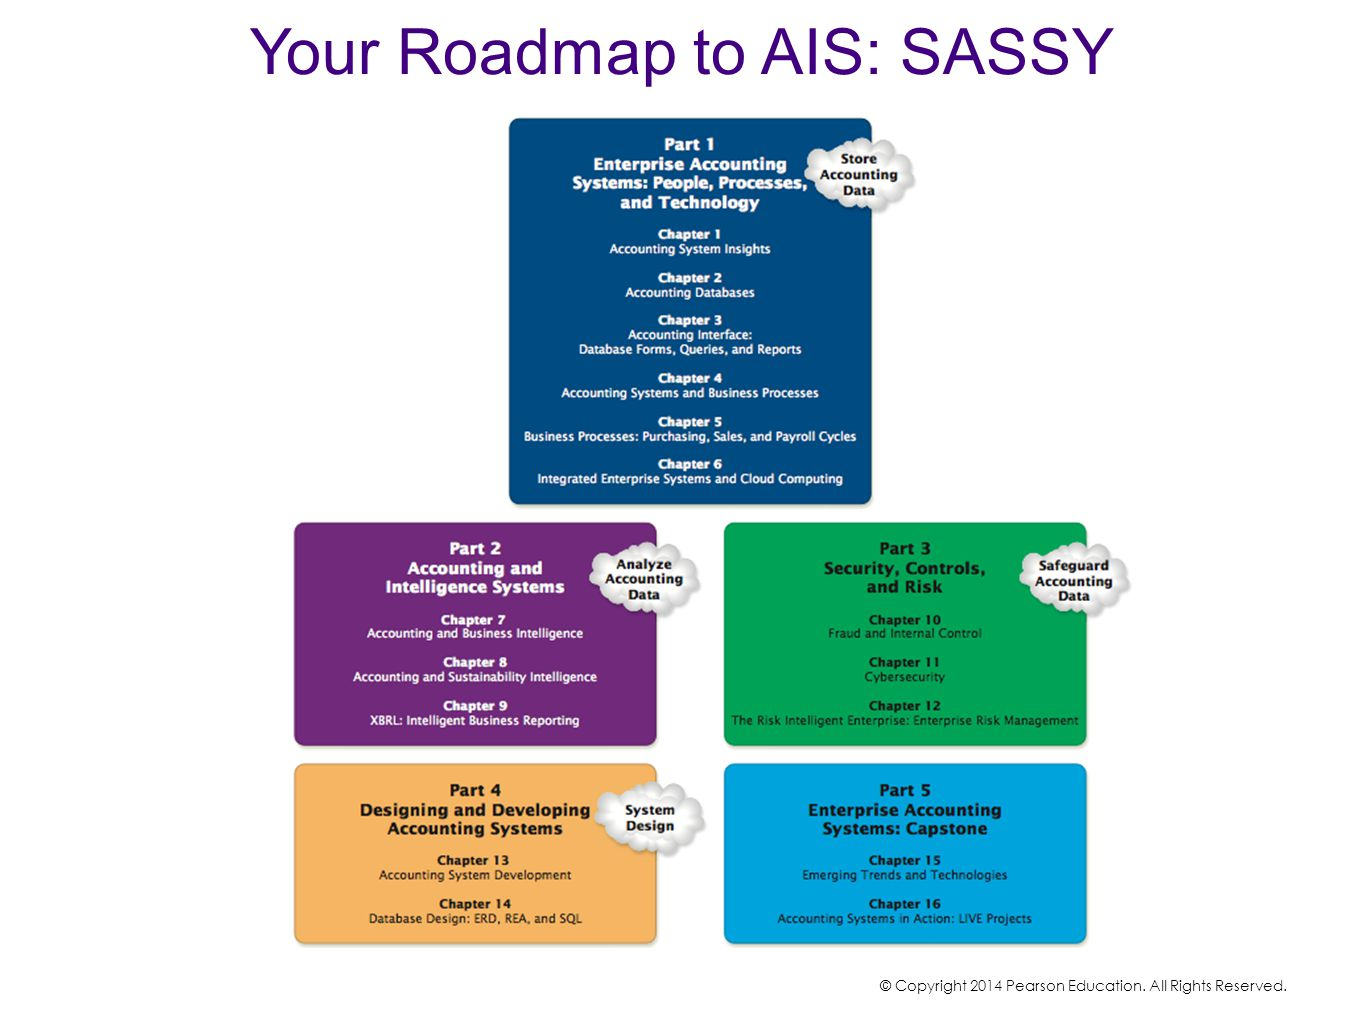 Your Roadmap to AIS: SASSY © Copyright 2014 Pearson Education. All Rights Reserved.